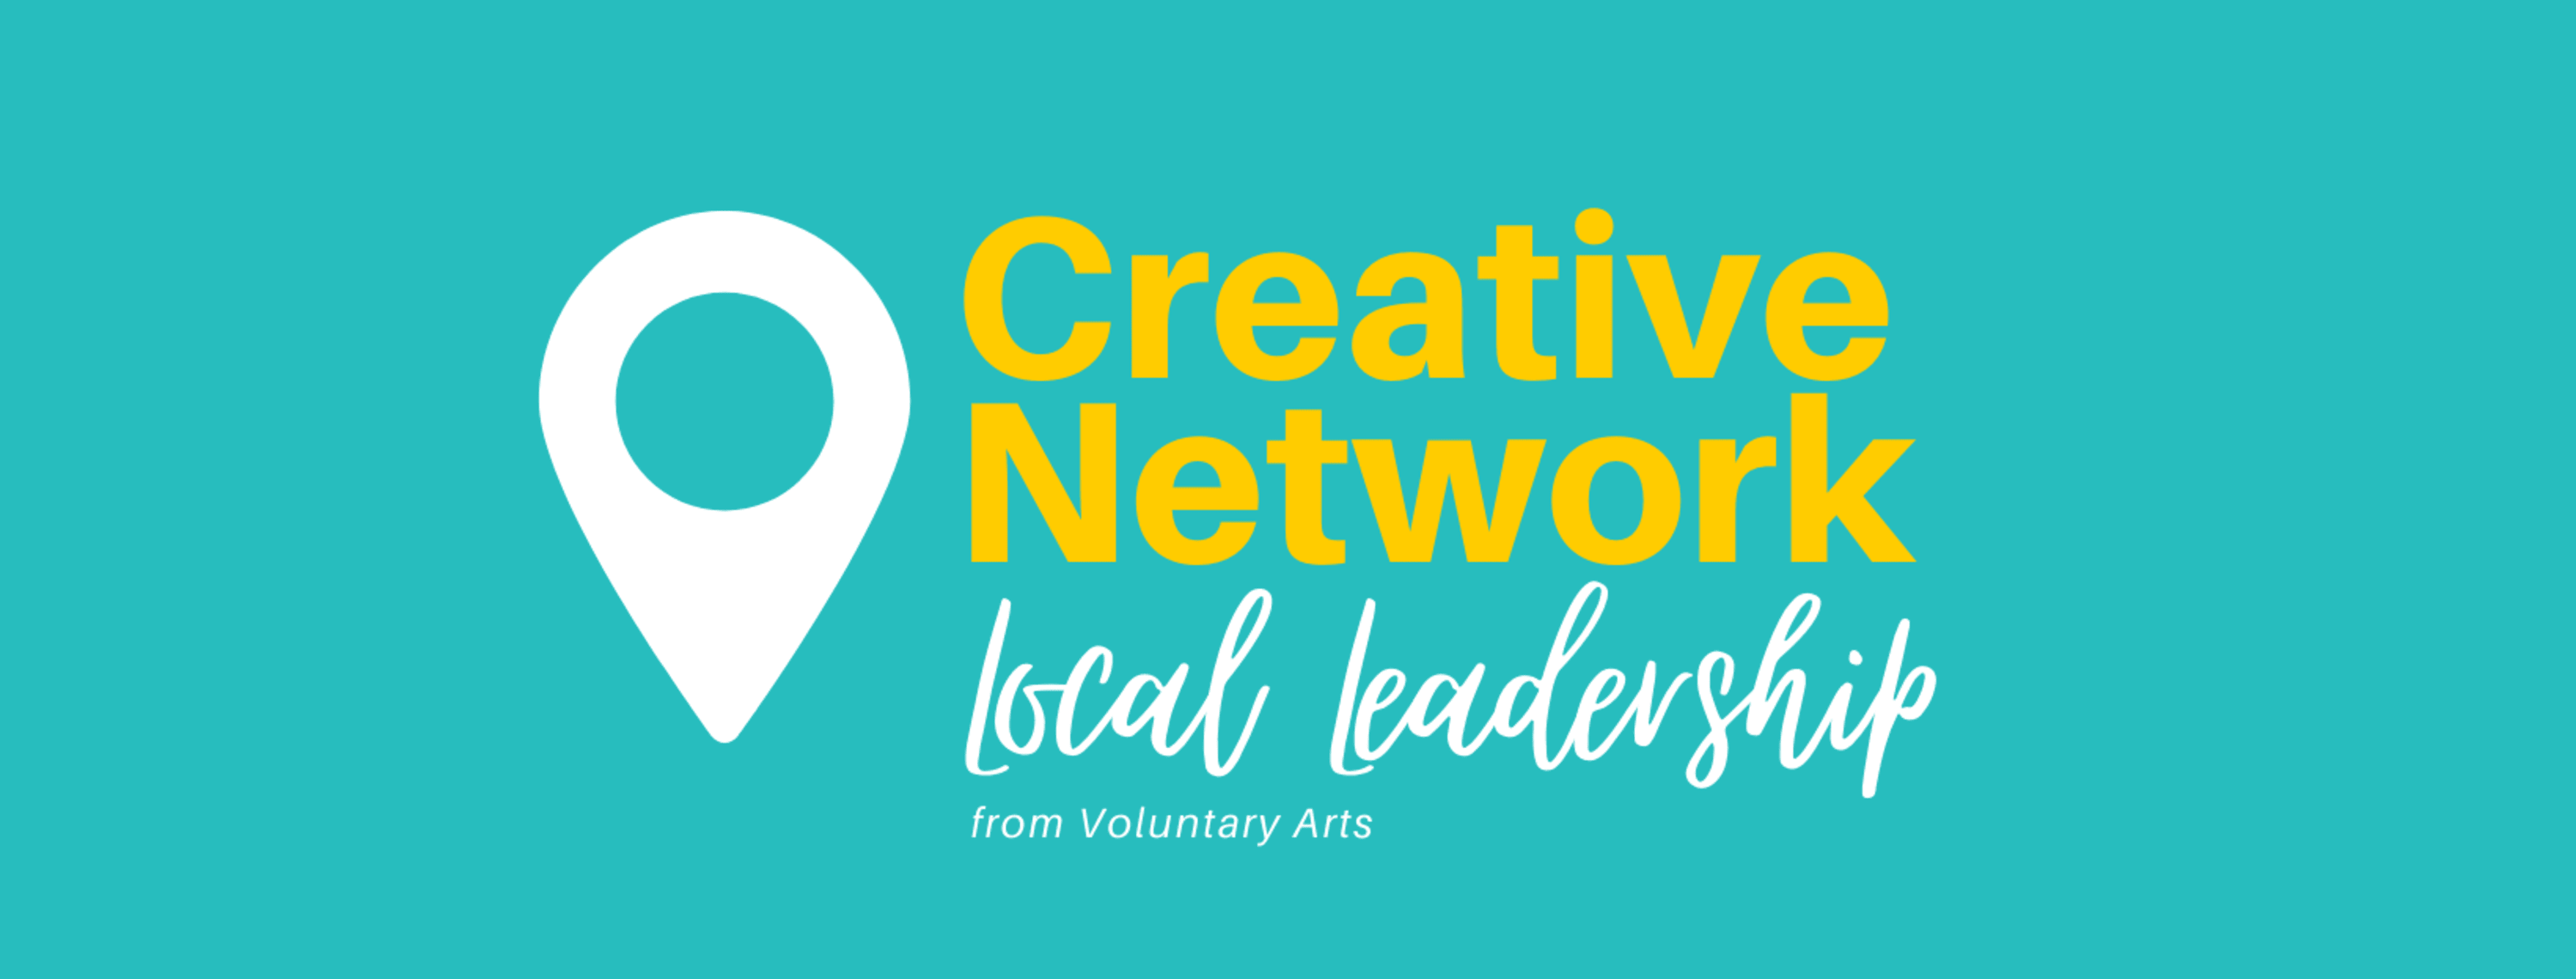 #CreativeNetwork - Local Leadership